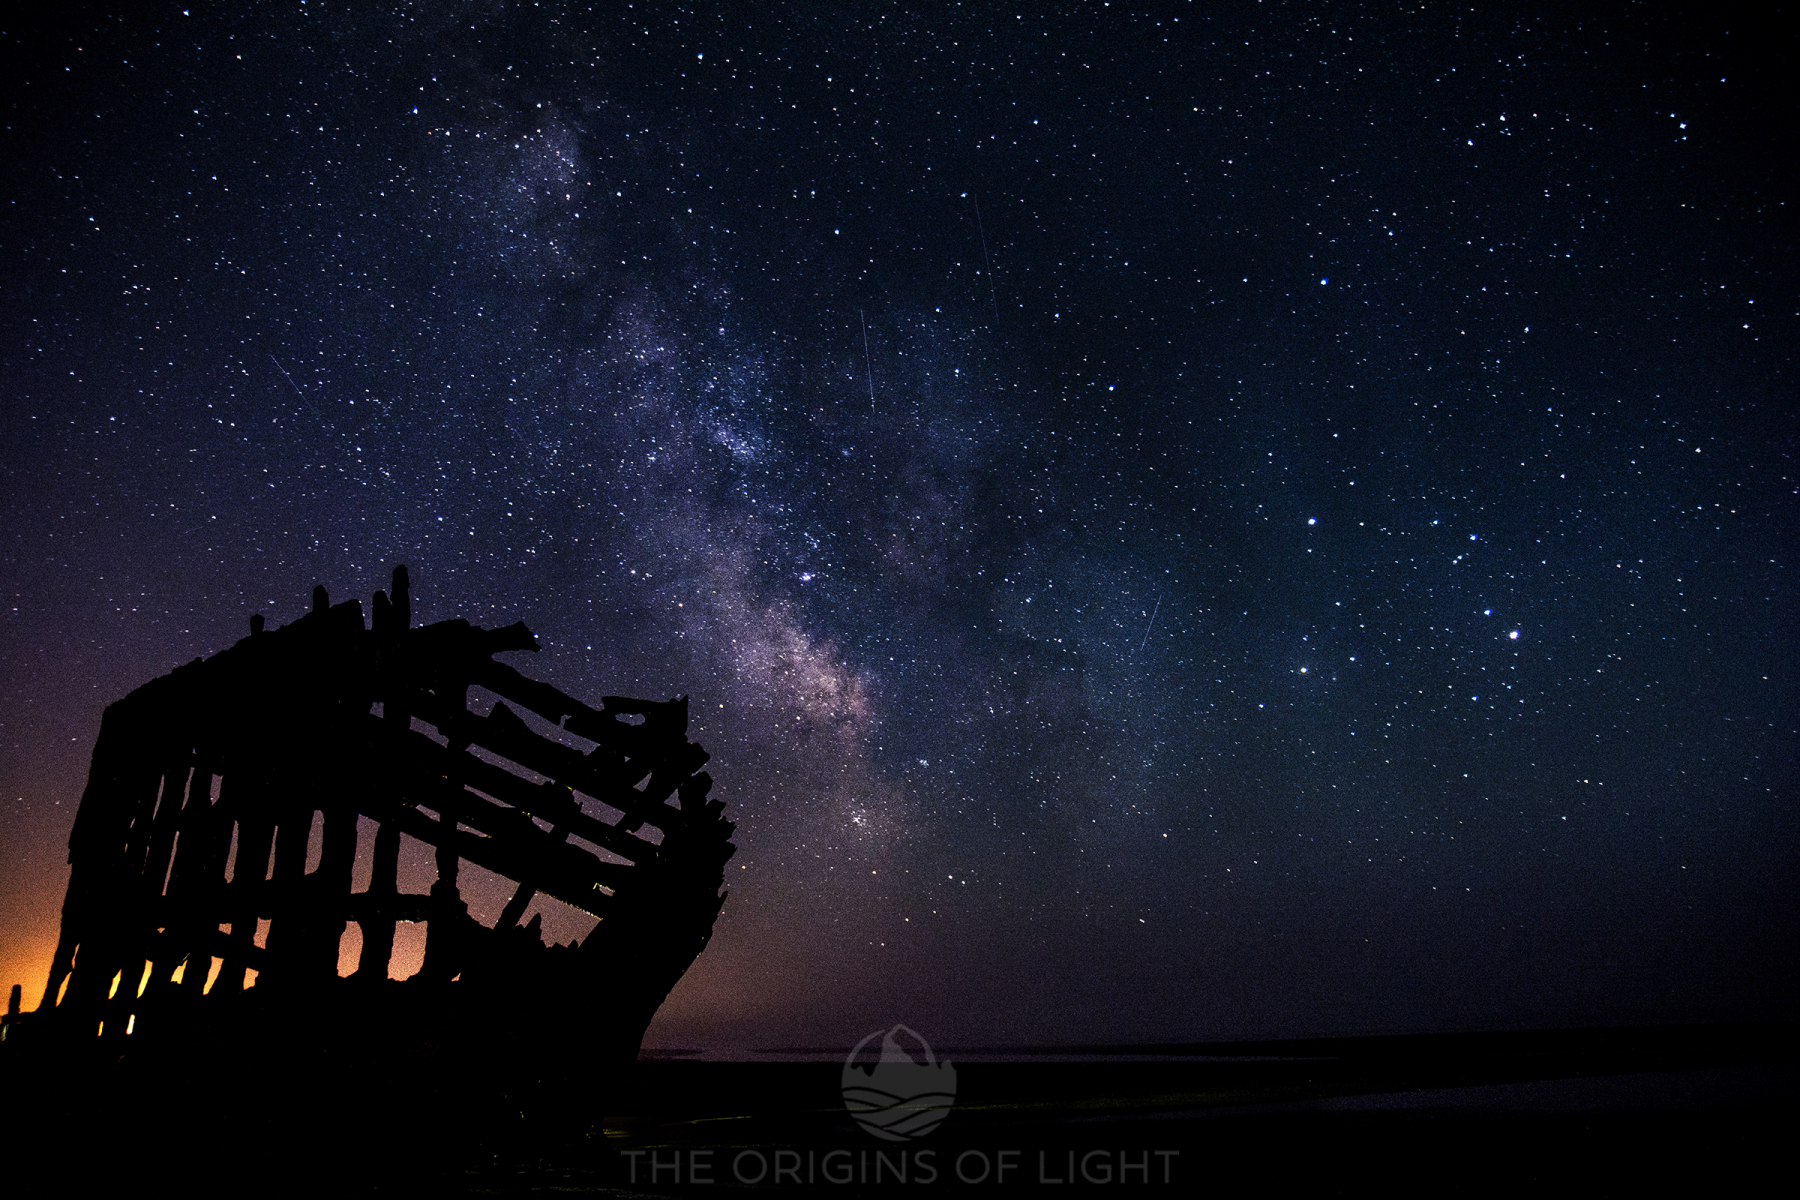 The Wreck of the Peter Iredale uner the Milky Way